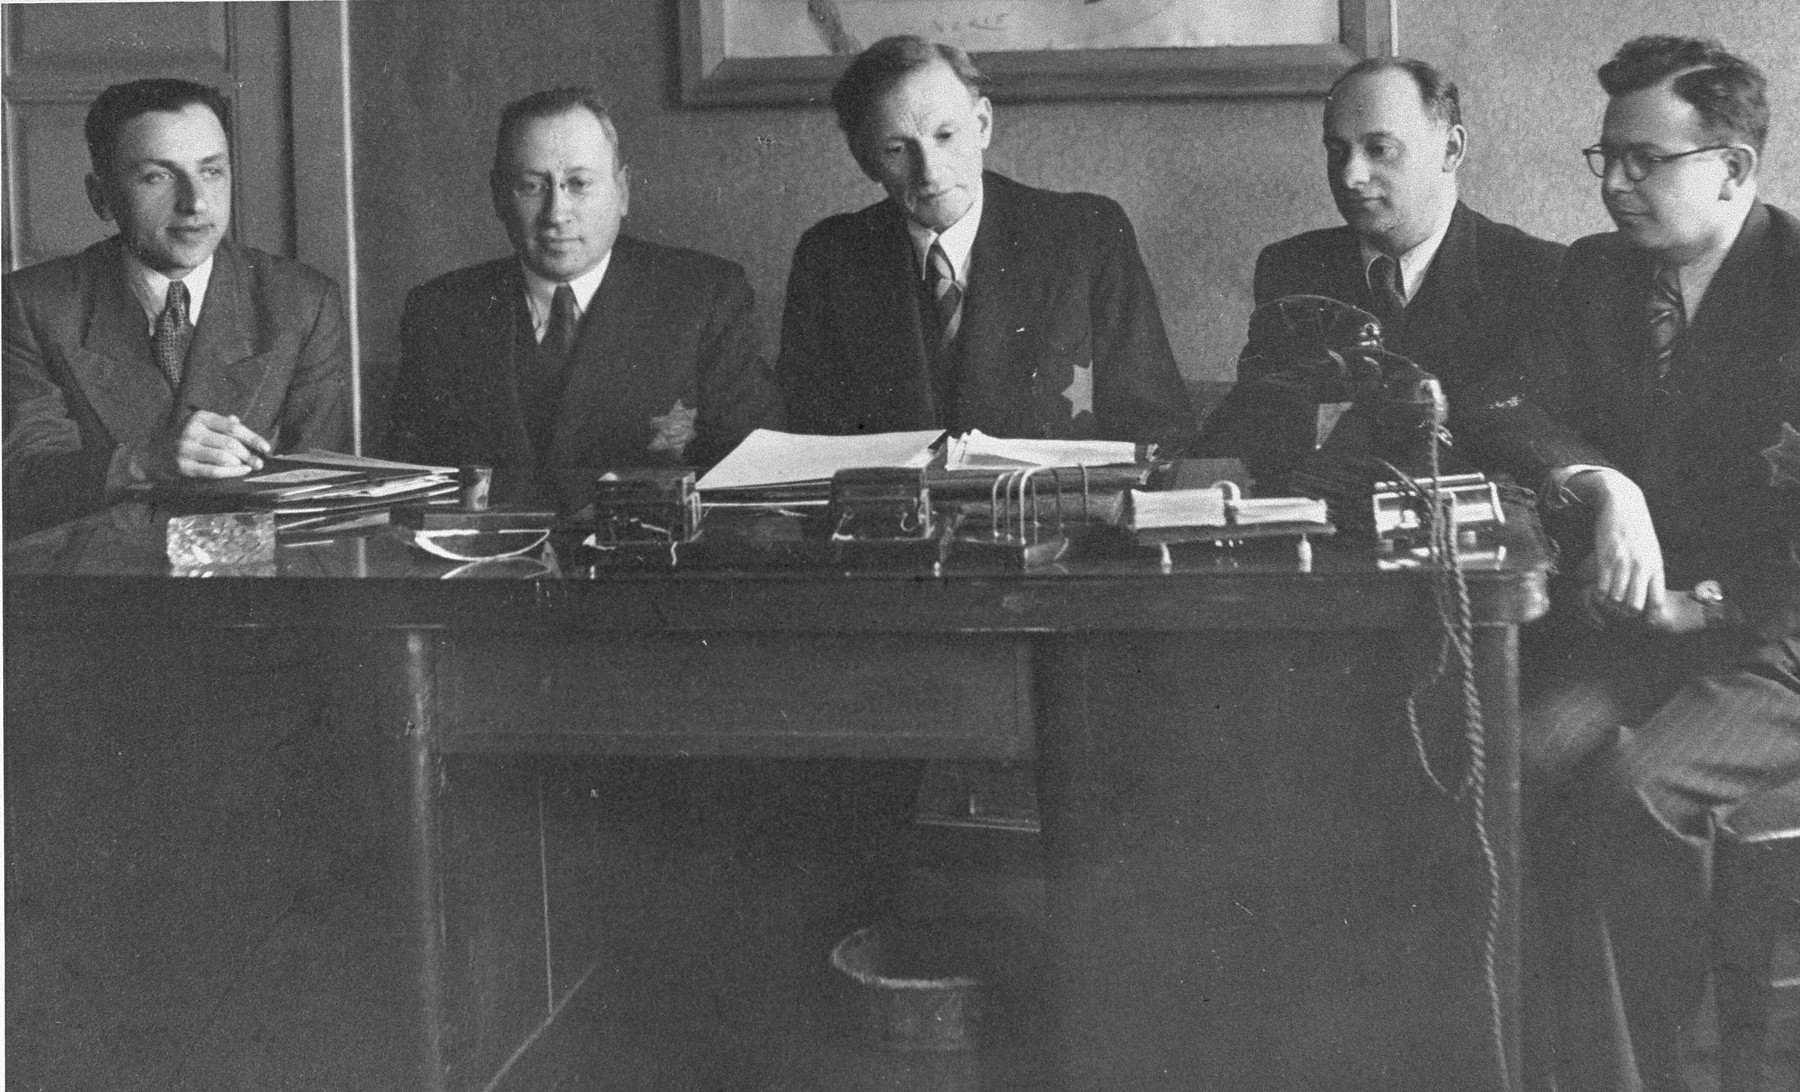 Members of the Kovno Altestenrat (Council of the Elders).  Left to right are Avraham Tory secretary; Leib Garfunkel, deputy chairman; Elkhanan Elkes, chairman; Yakov Goldberg, head of the Labor Office and Zvi Levin, advisor and link with the underground.